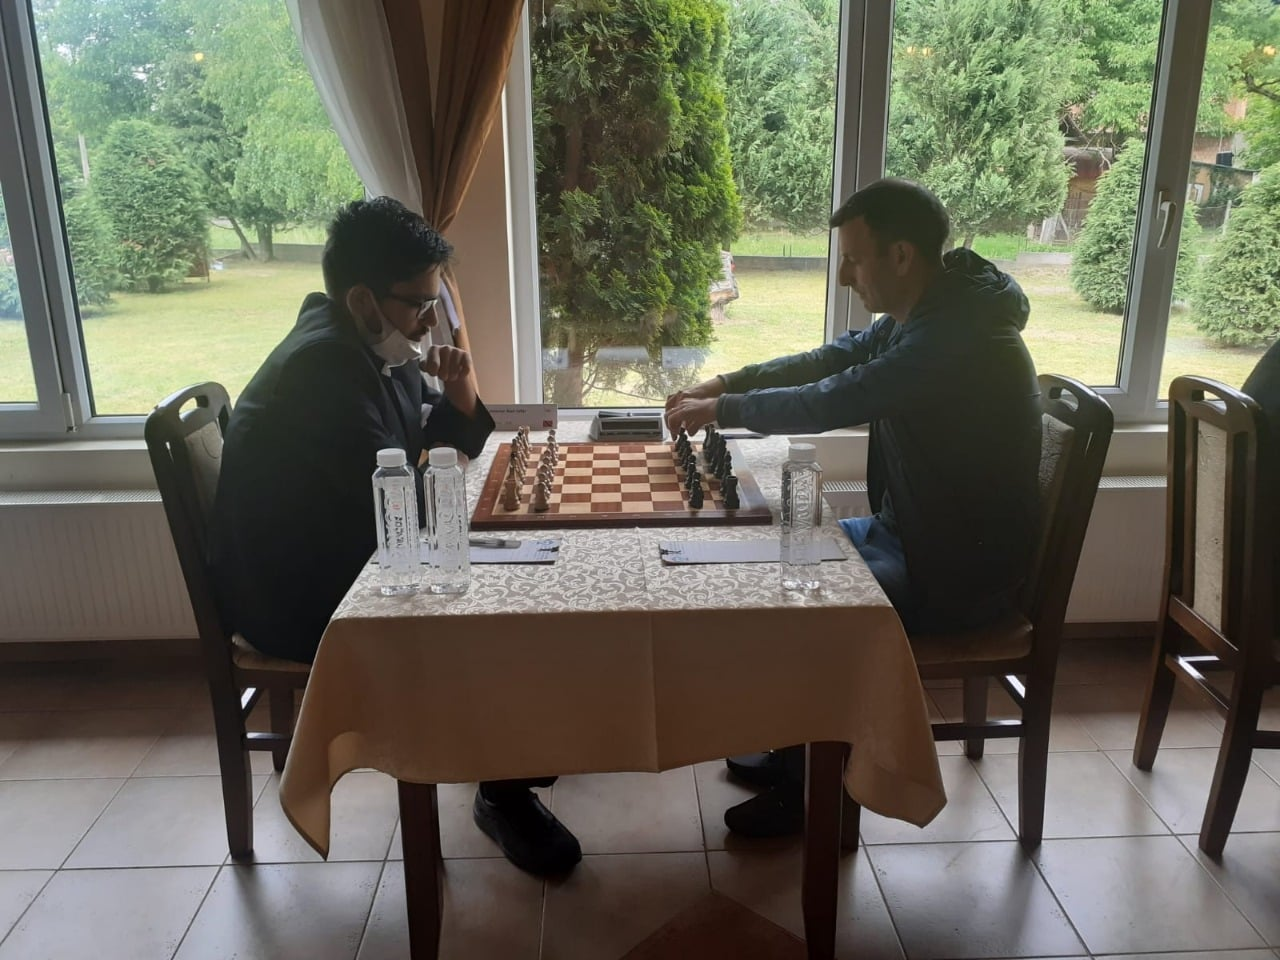 Trinidad and Tobago chess player, Alan-Safar Ramoutar, 18, plays during the Bosnia Premier League in Bosnia and Herzegovina. (Photo credit - Trinidad and Tobago Chess Association)